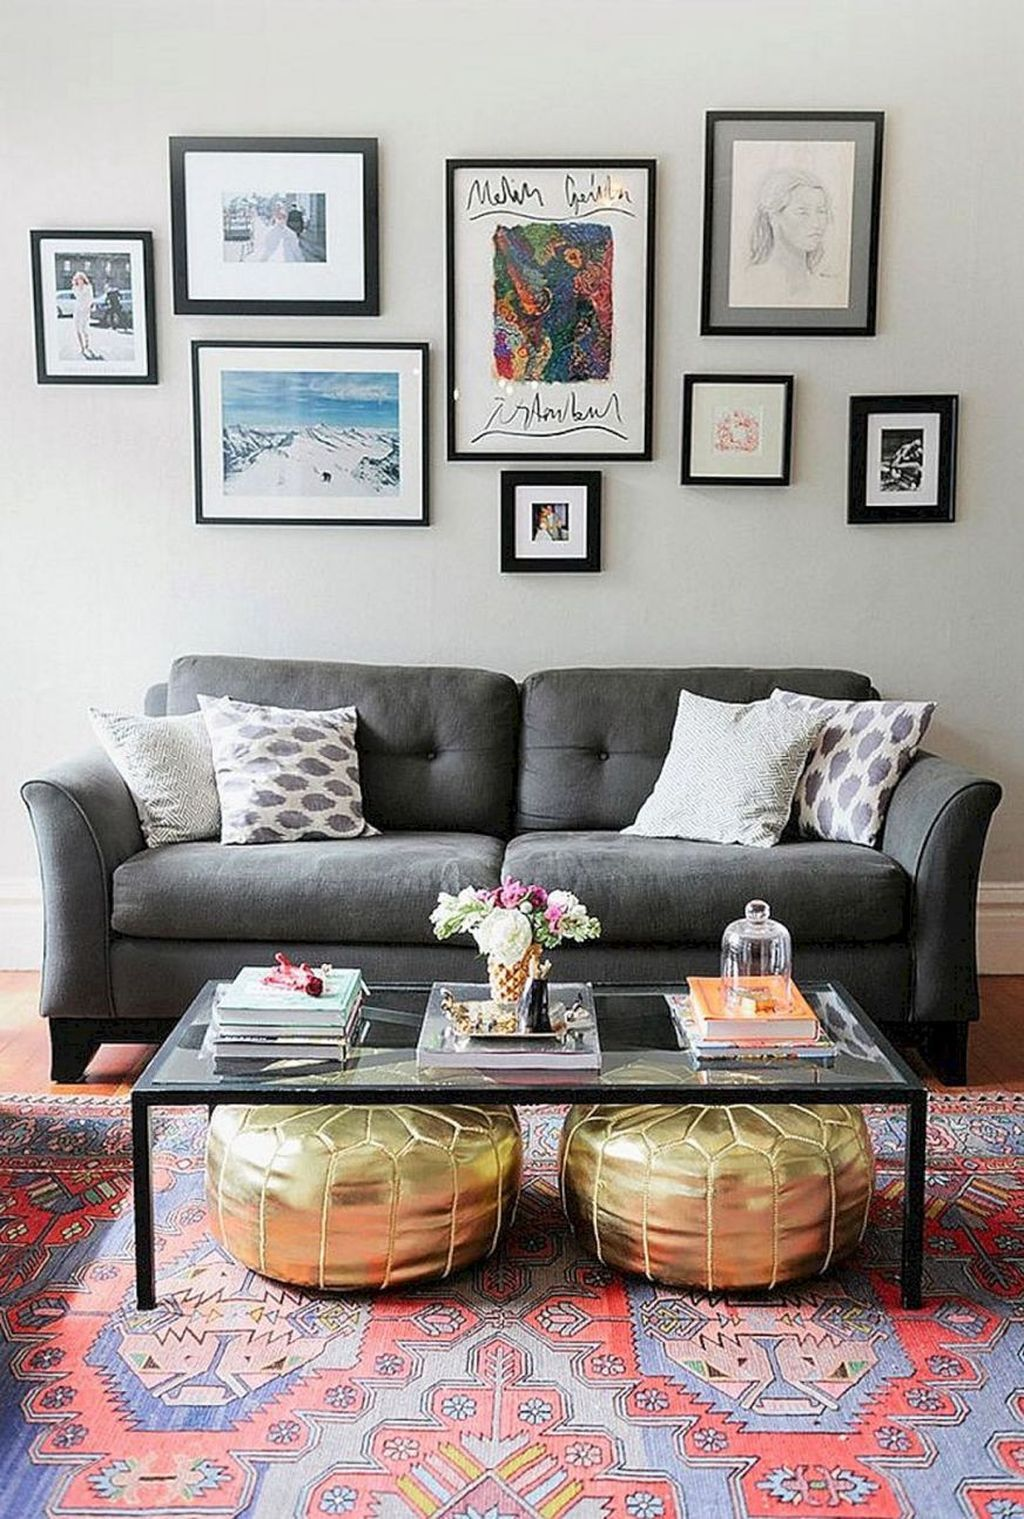 Budget friendly tips for decorating and furnishing your dorm or first apartment add character save money with secondhand pieces diy  fresh coat of also pin by grayson dolby on imm hommee pinterest rh